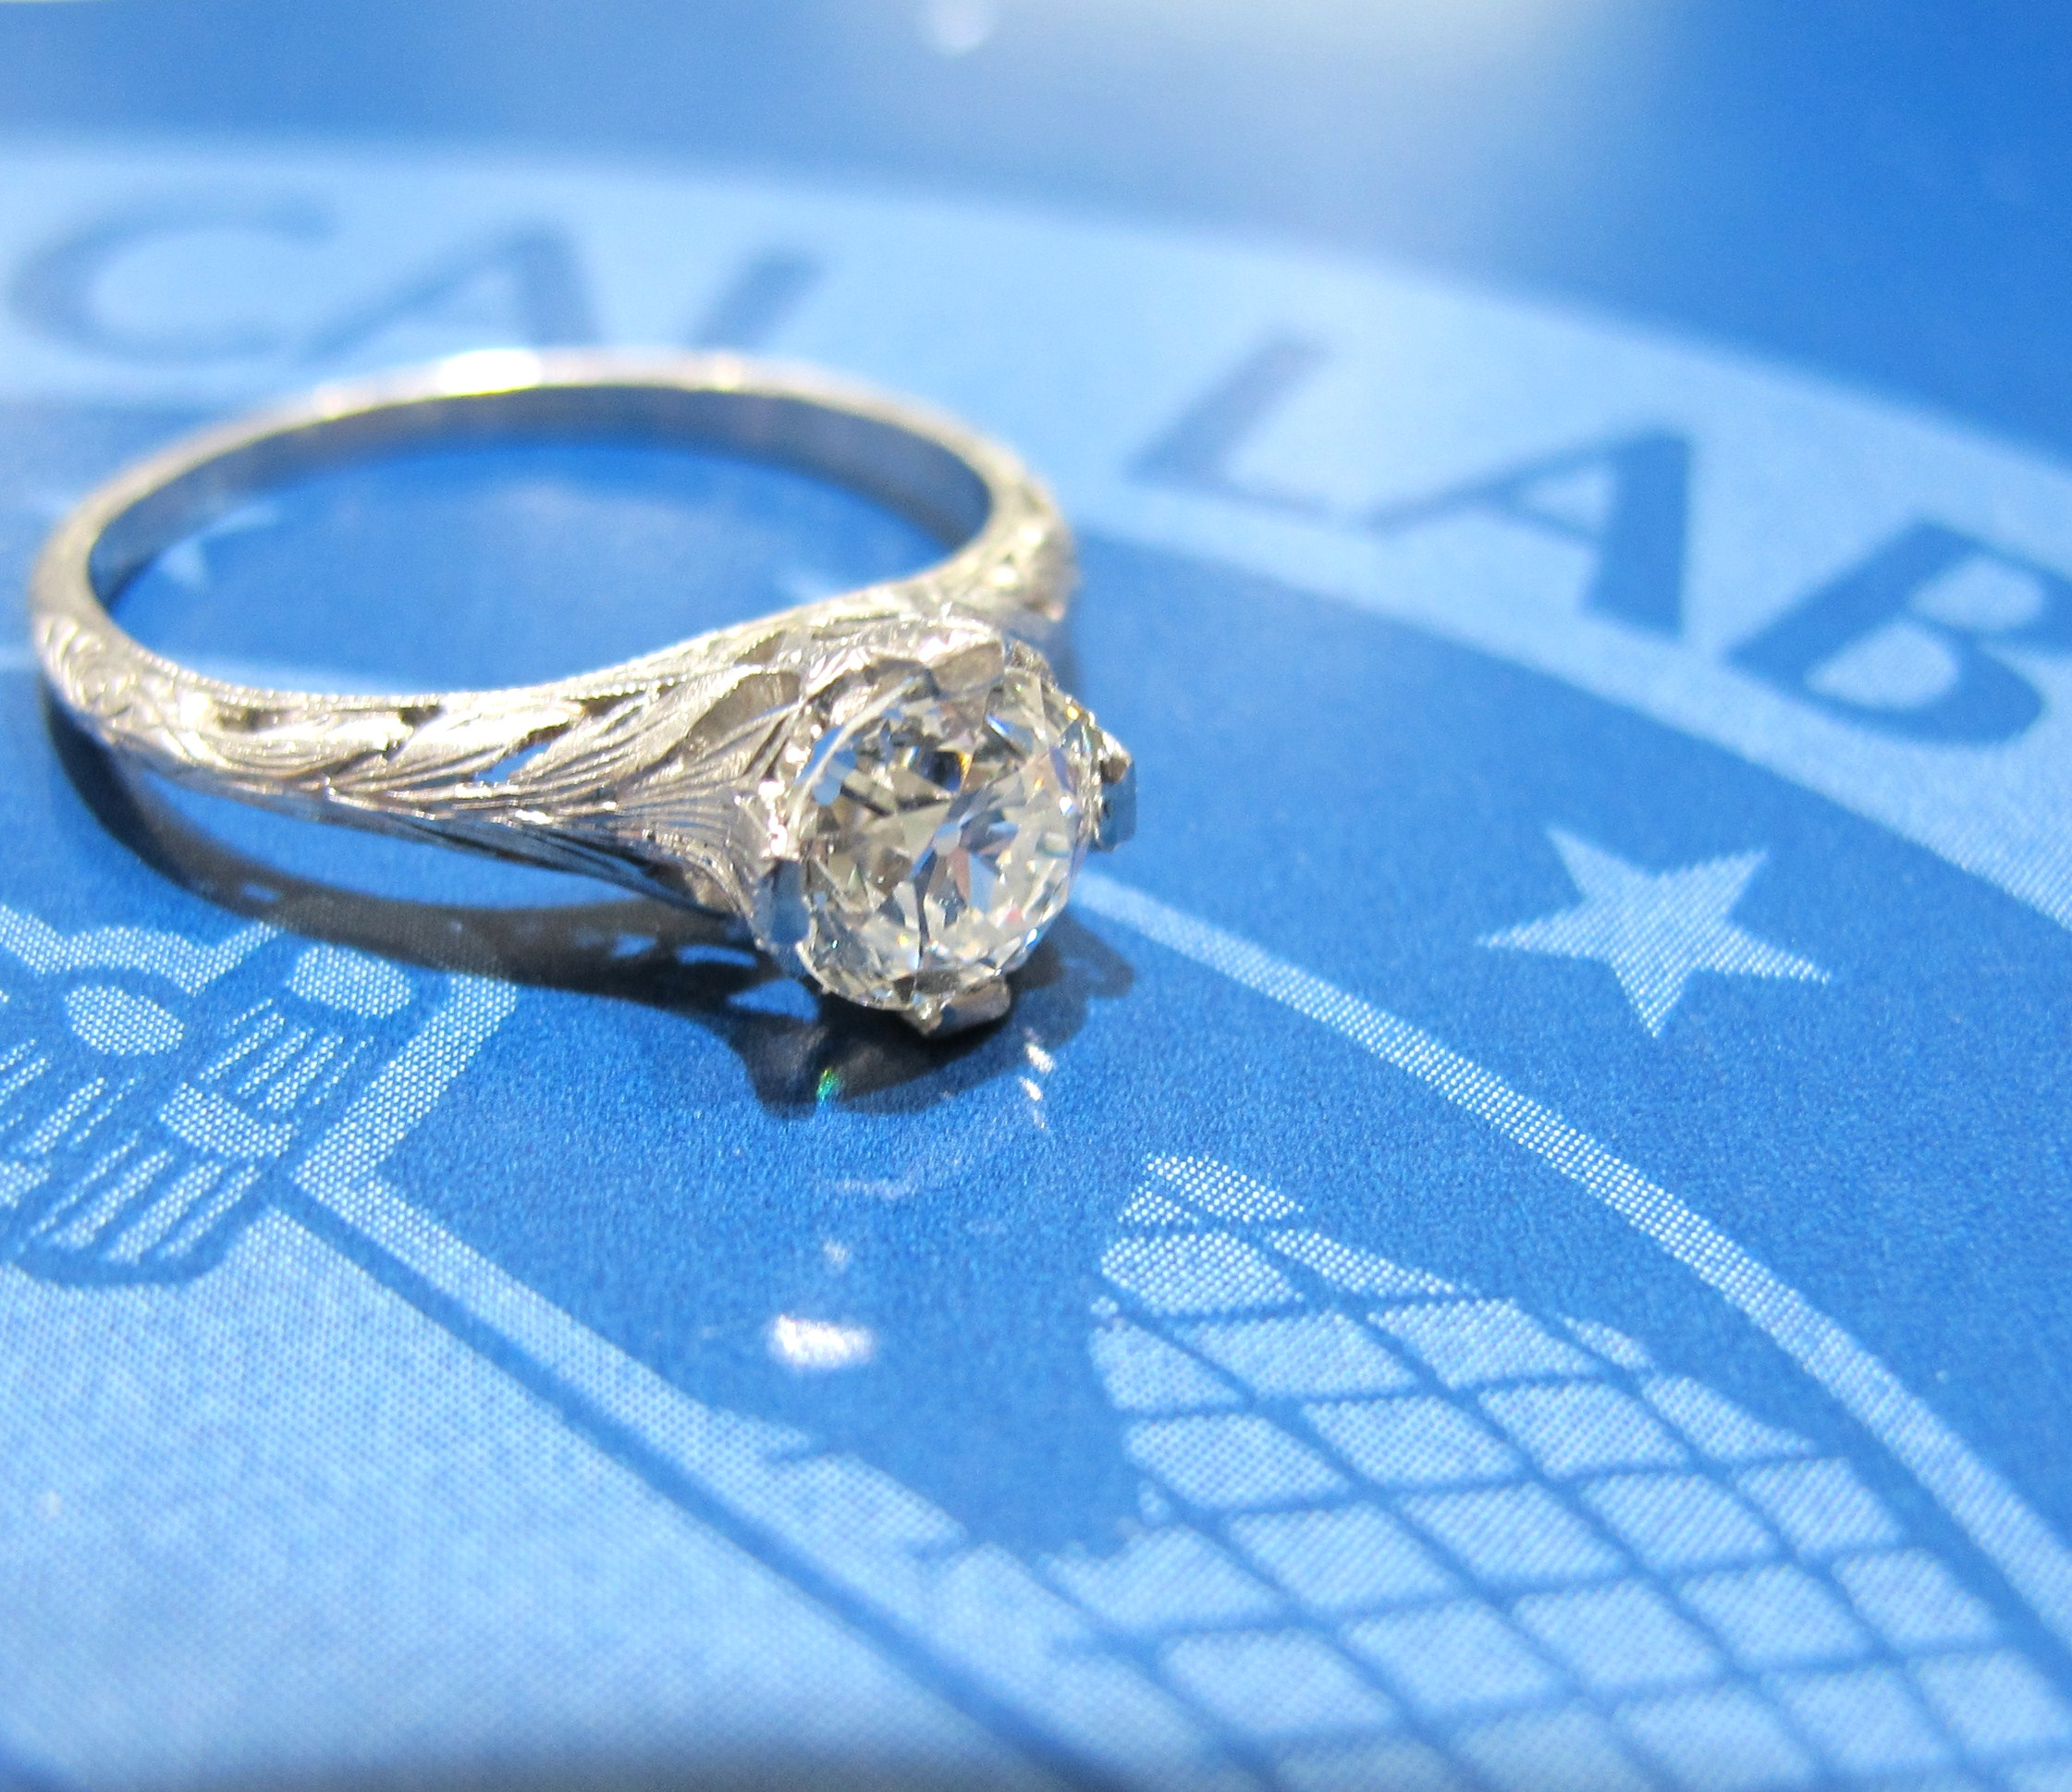 Platinum ring with EGL certified .69ct H color, VS2 clarity old European cut diamond. Early 20th century, available at the shop!